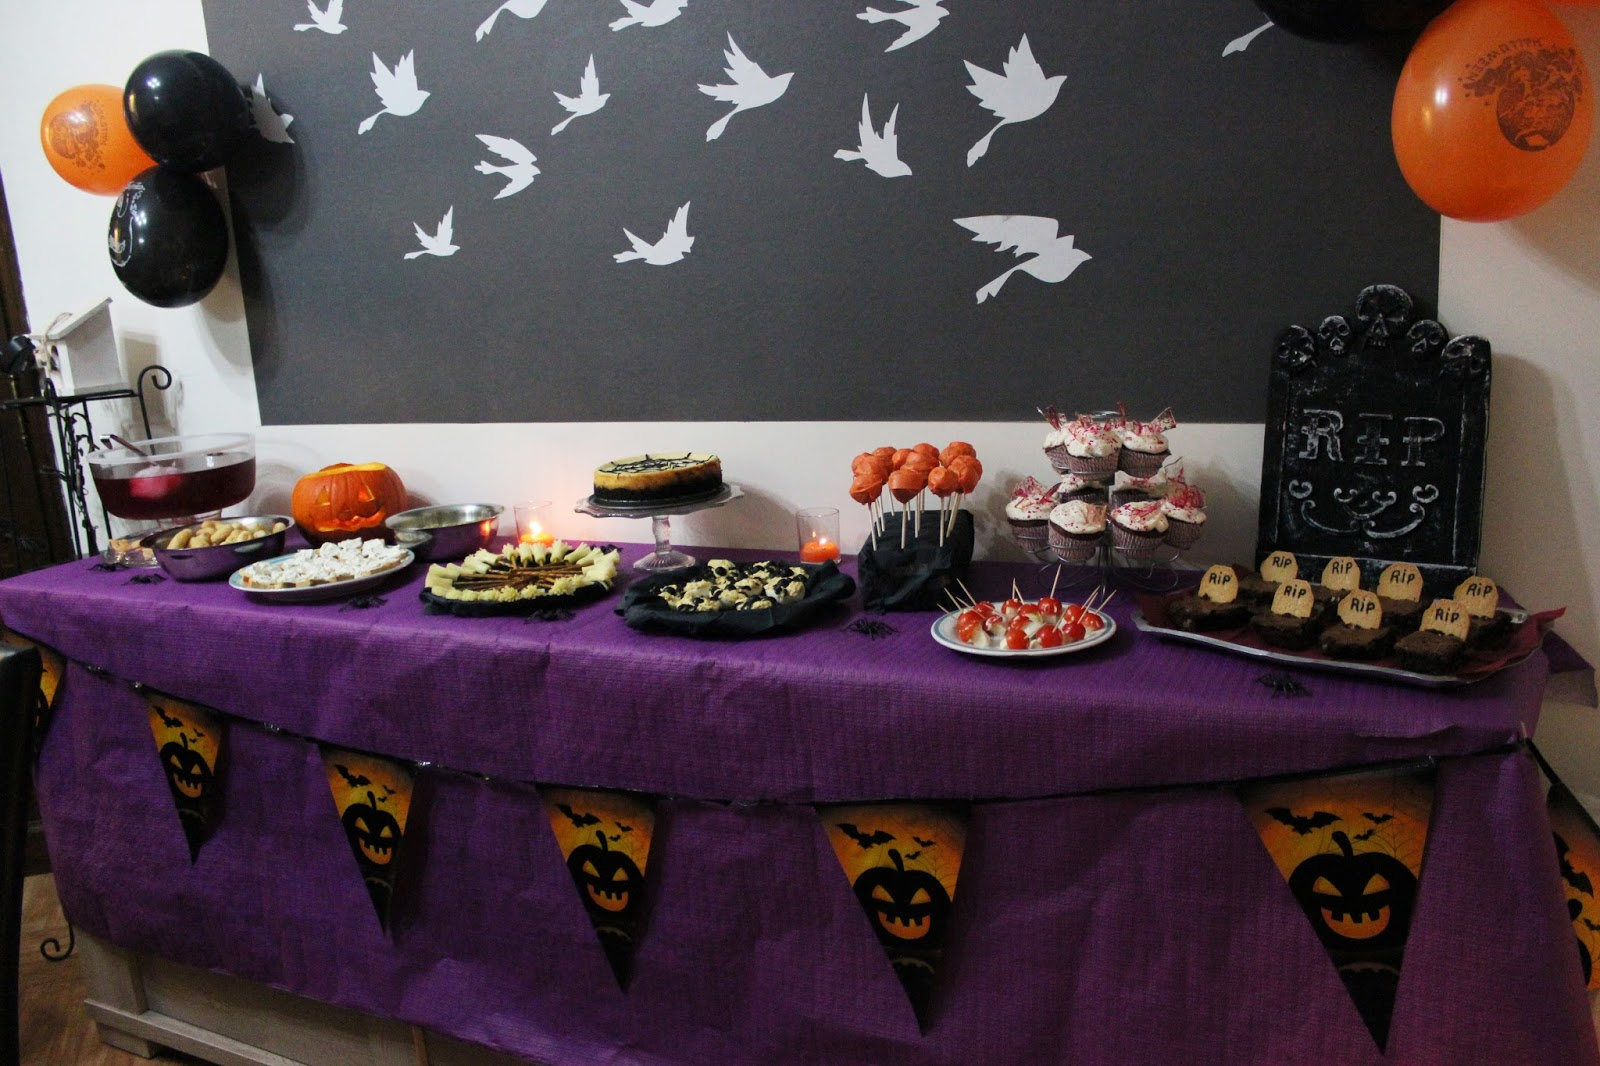 http://carnet-sucre.blogspot.com/2015/11/table-dhalloween.html